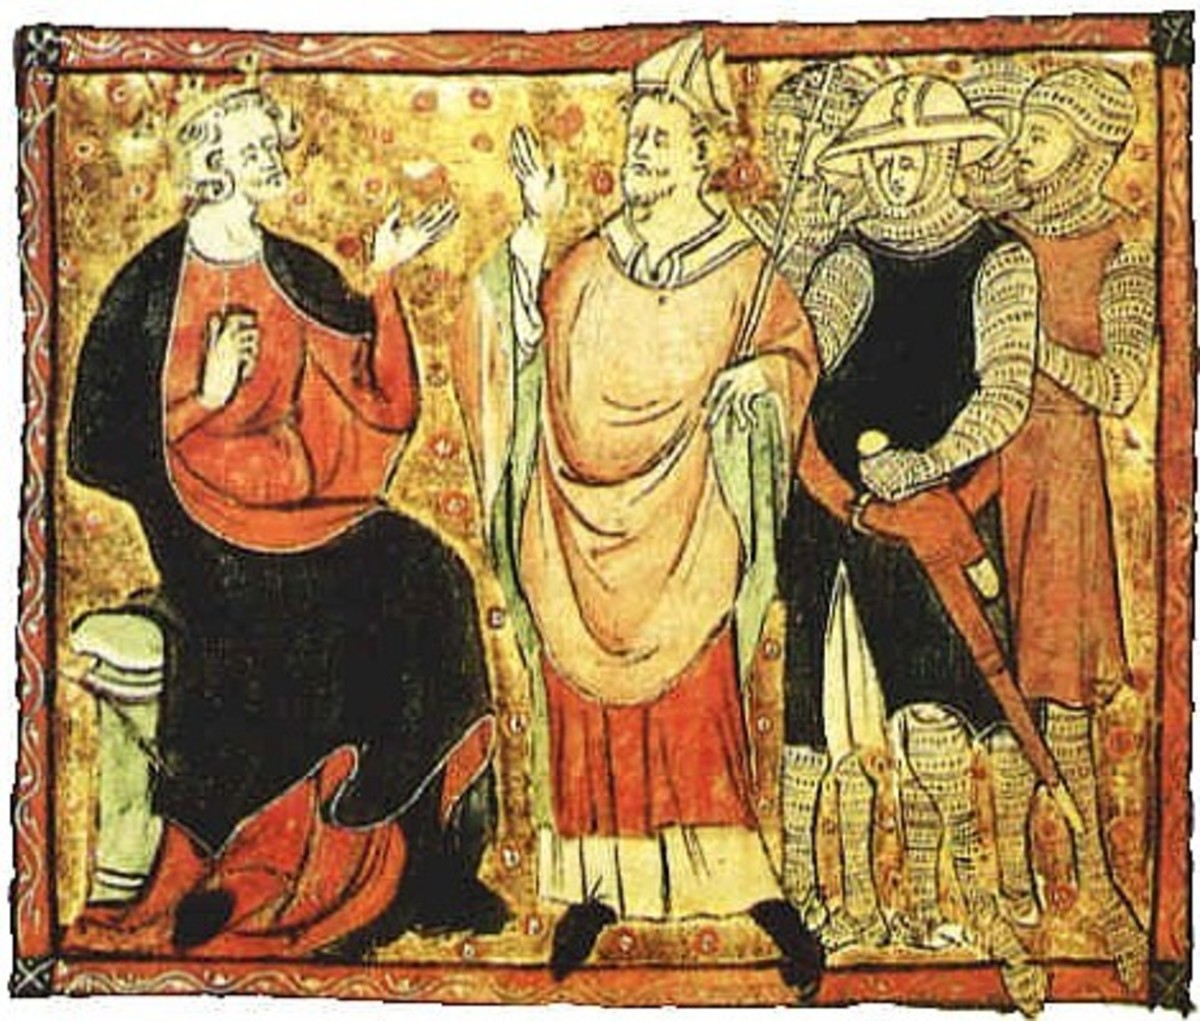 Thomas Becket born 21st December 1119 died 29th December 1170 and King Henry II born 5th March 1133 died 6th July 1189